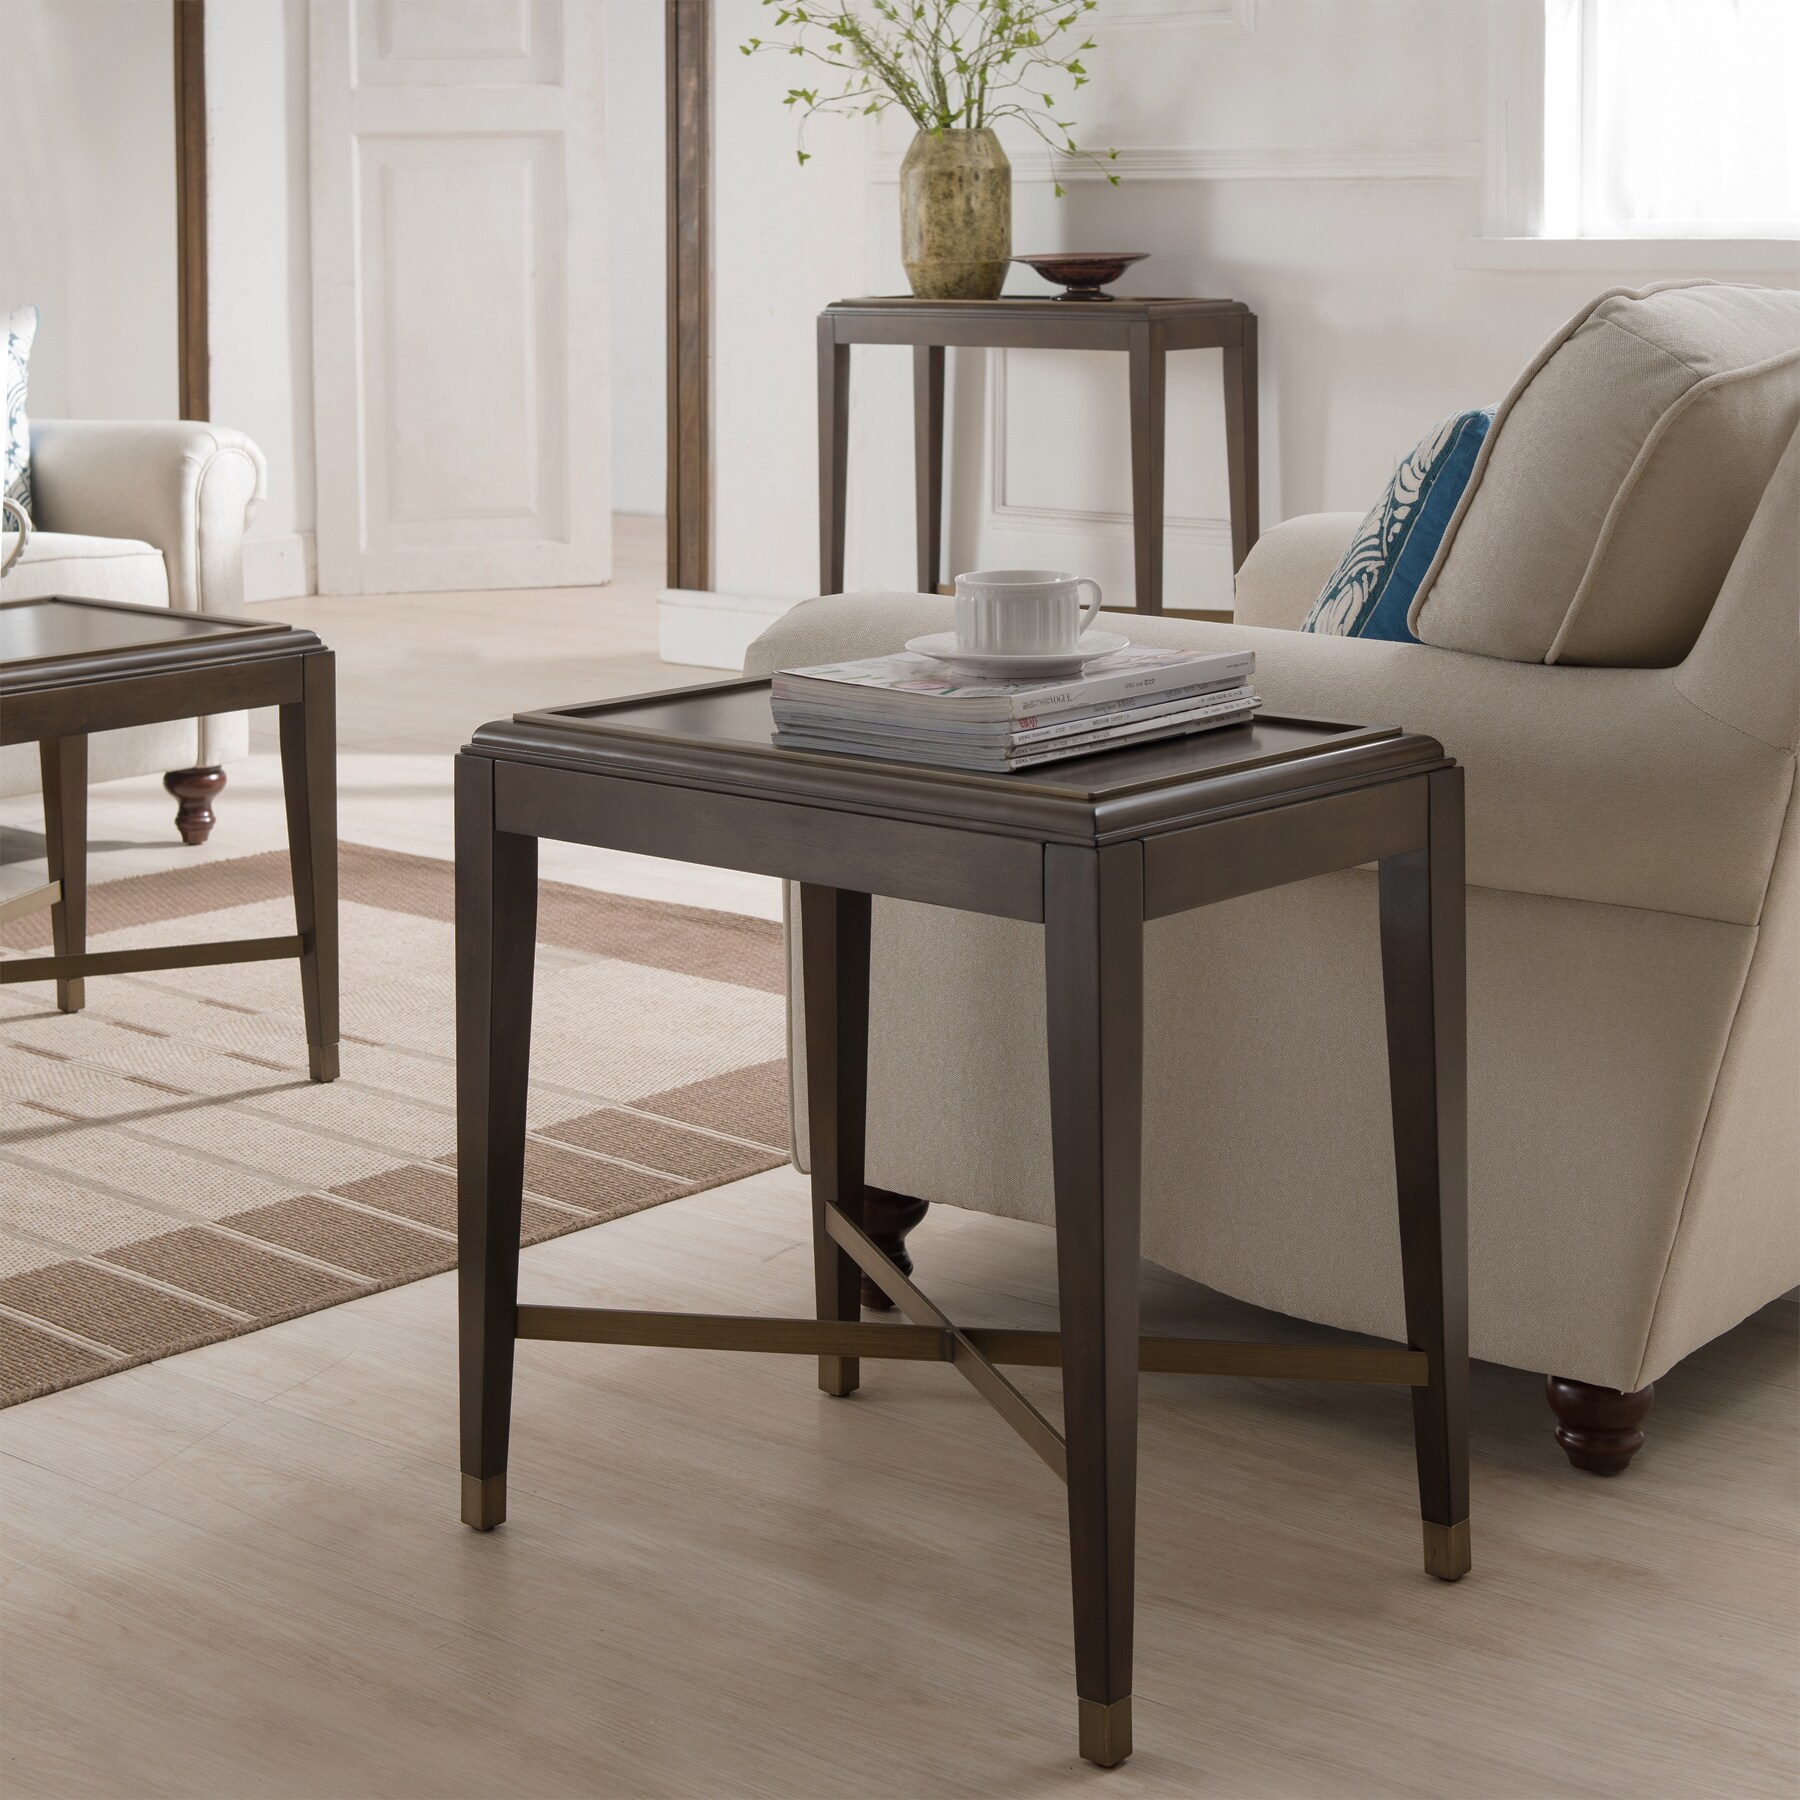 - Shop Contemporary Brown Finish Narrow Accent Table - Overstock